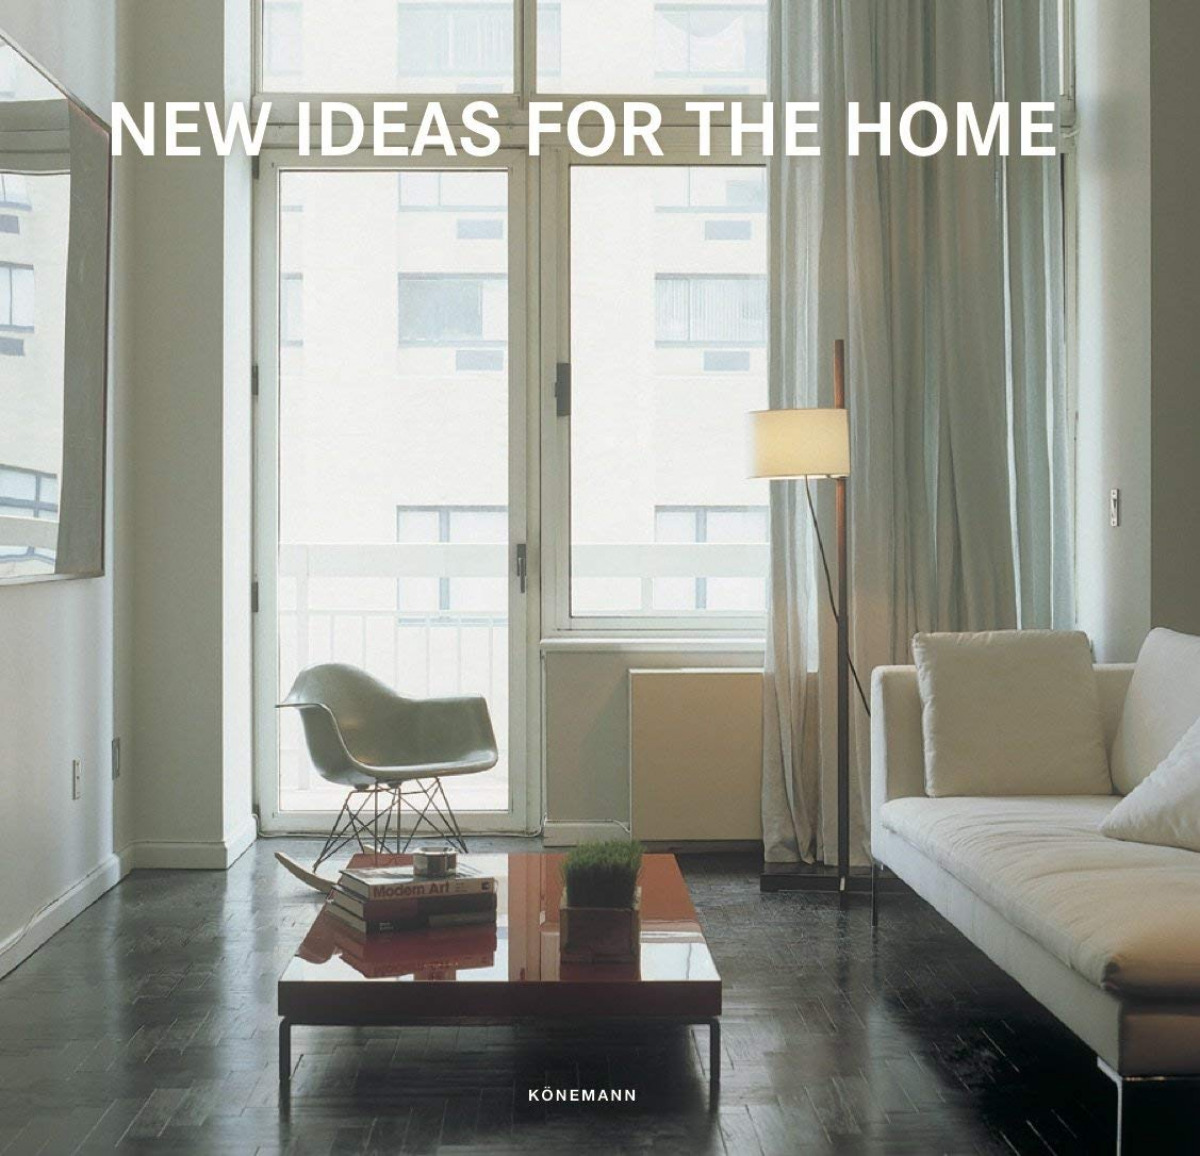 NEW IDEAS FOR THE HOME 9783741920462